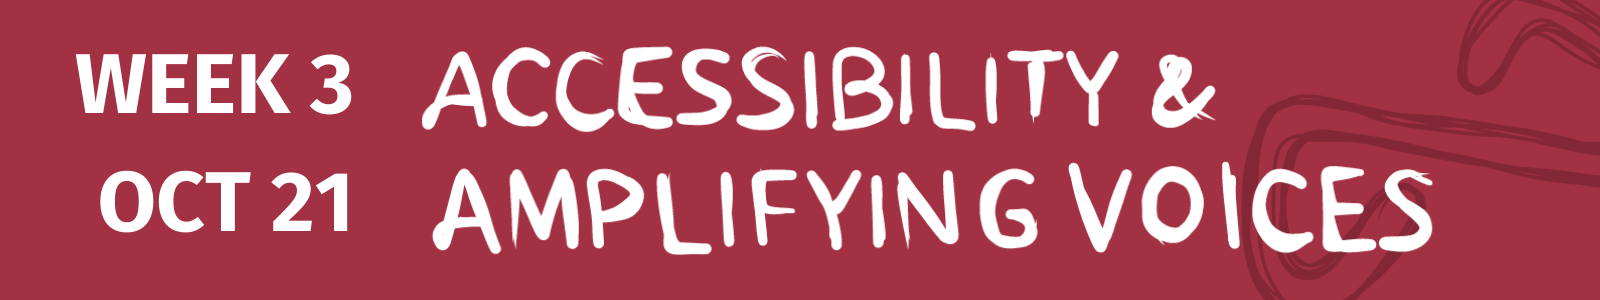 October 21 Accessibility & Amplifying Voices